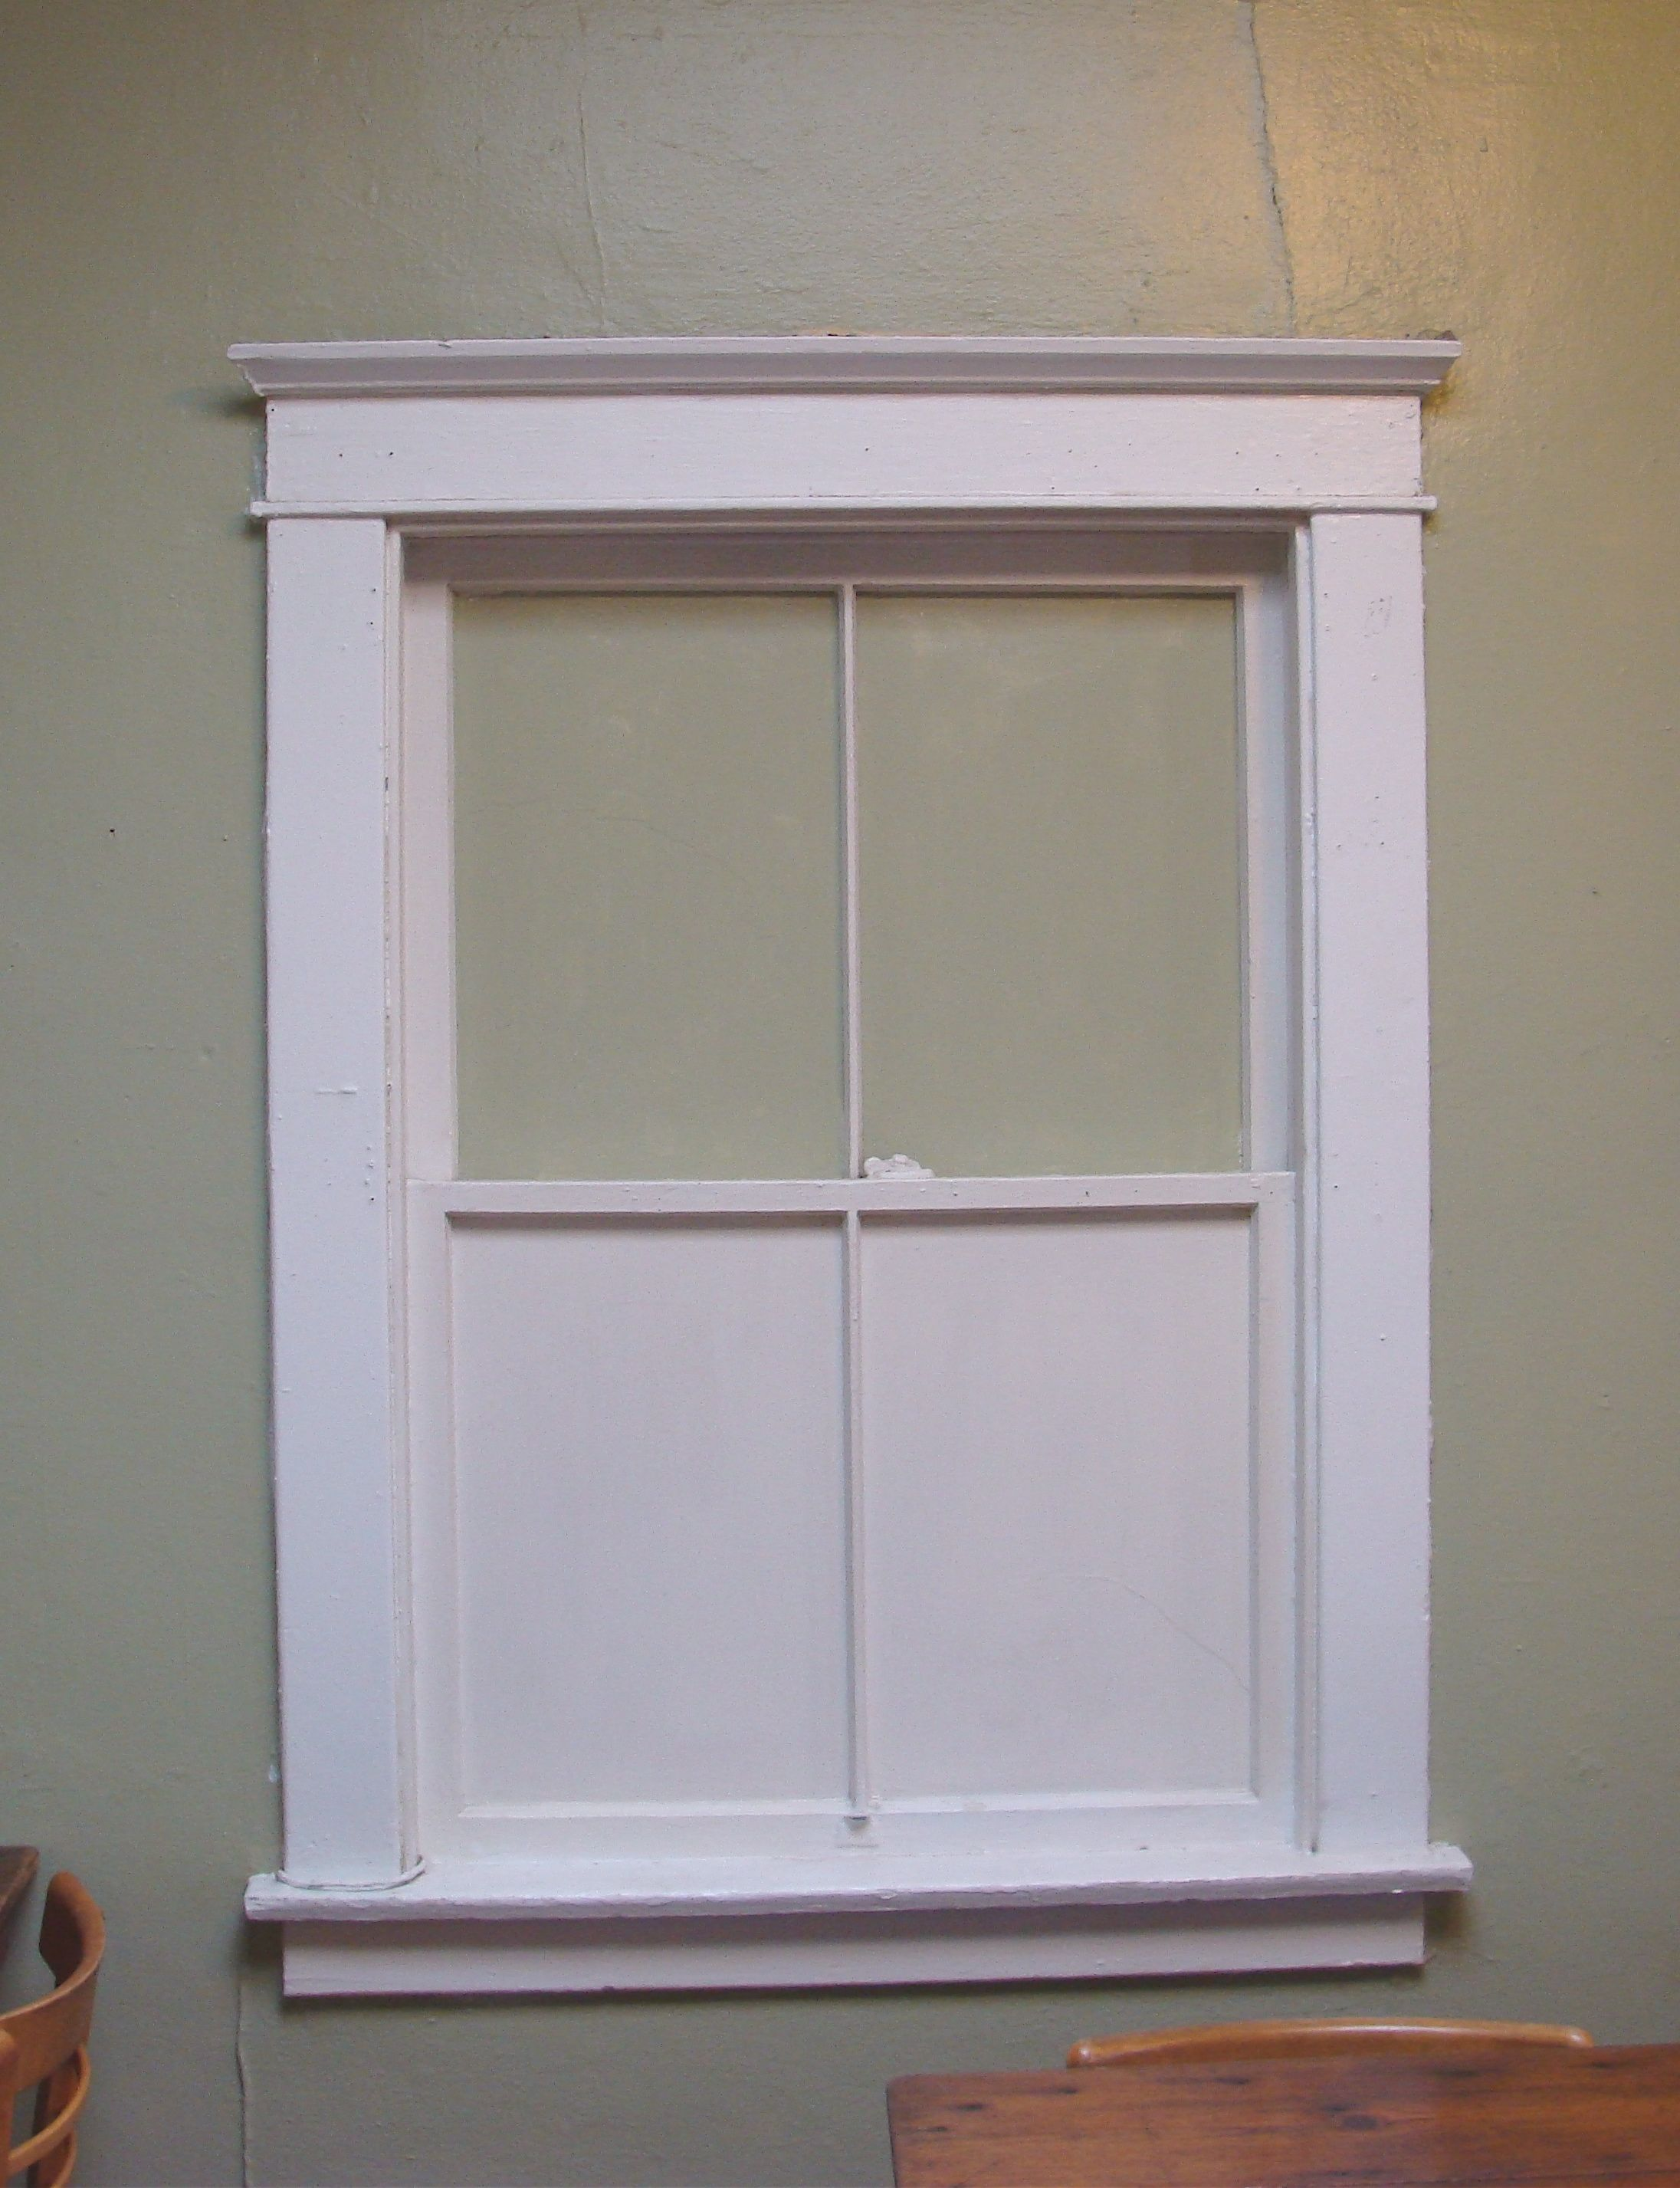 Craftsman exterior window trim - Craftsman Window Google Search Exterior Window Molding Idea